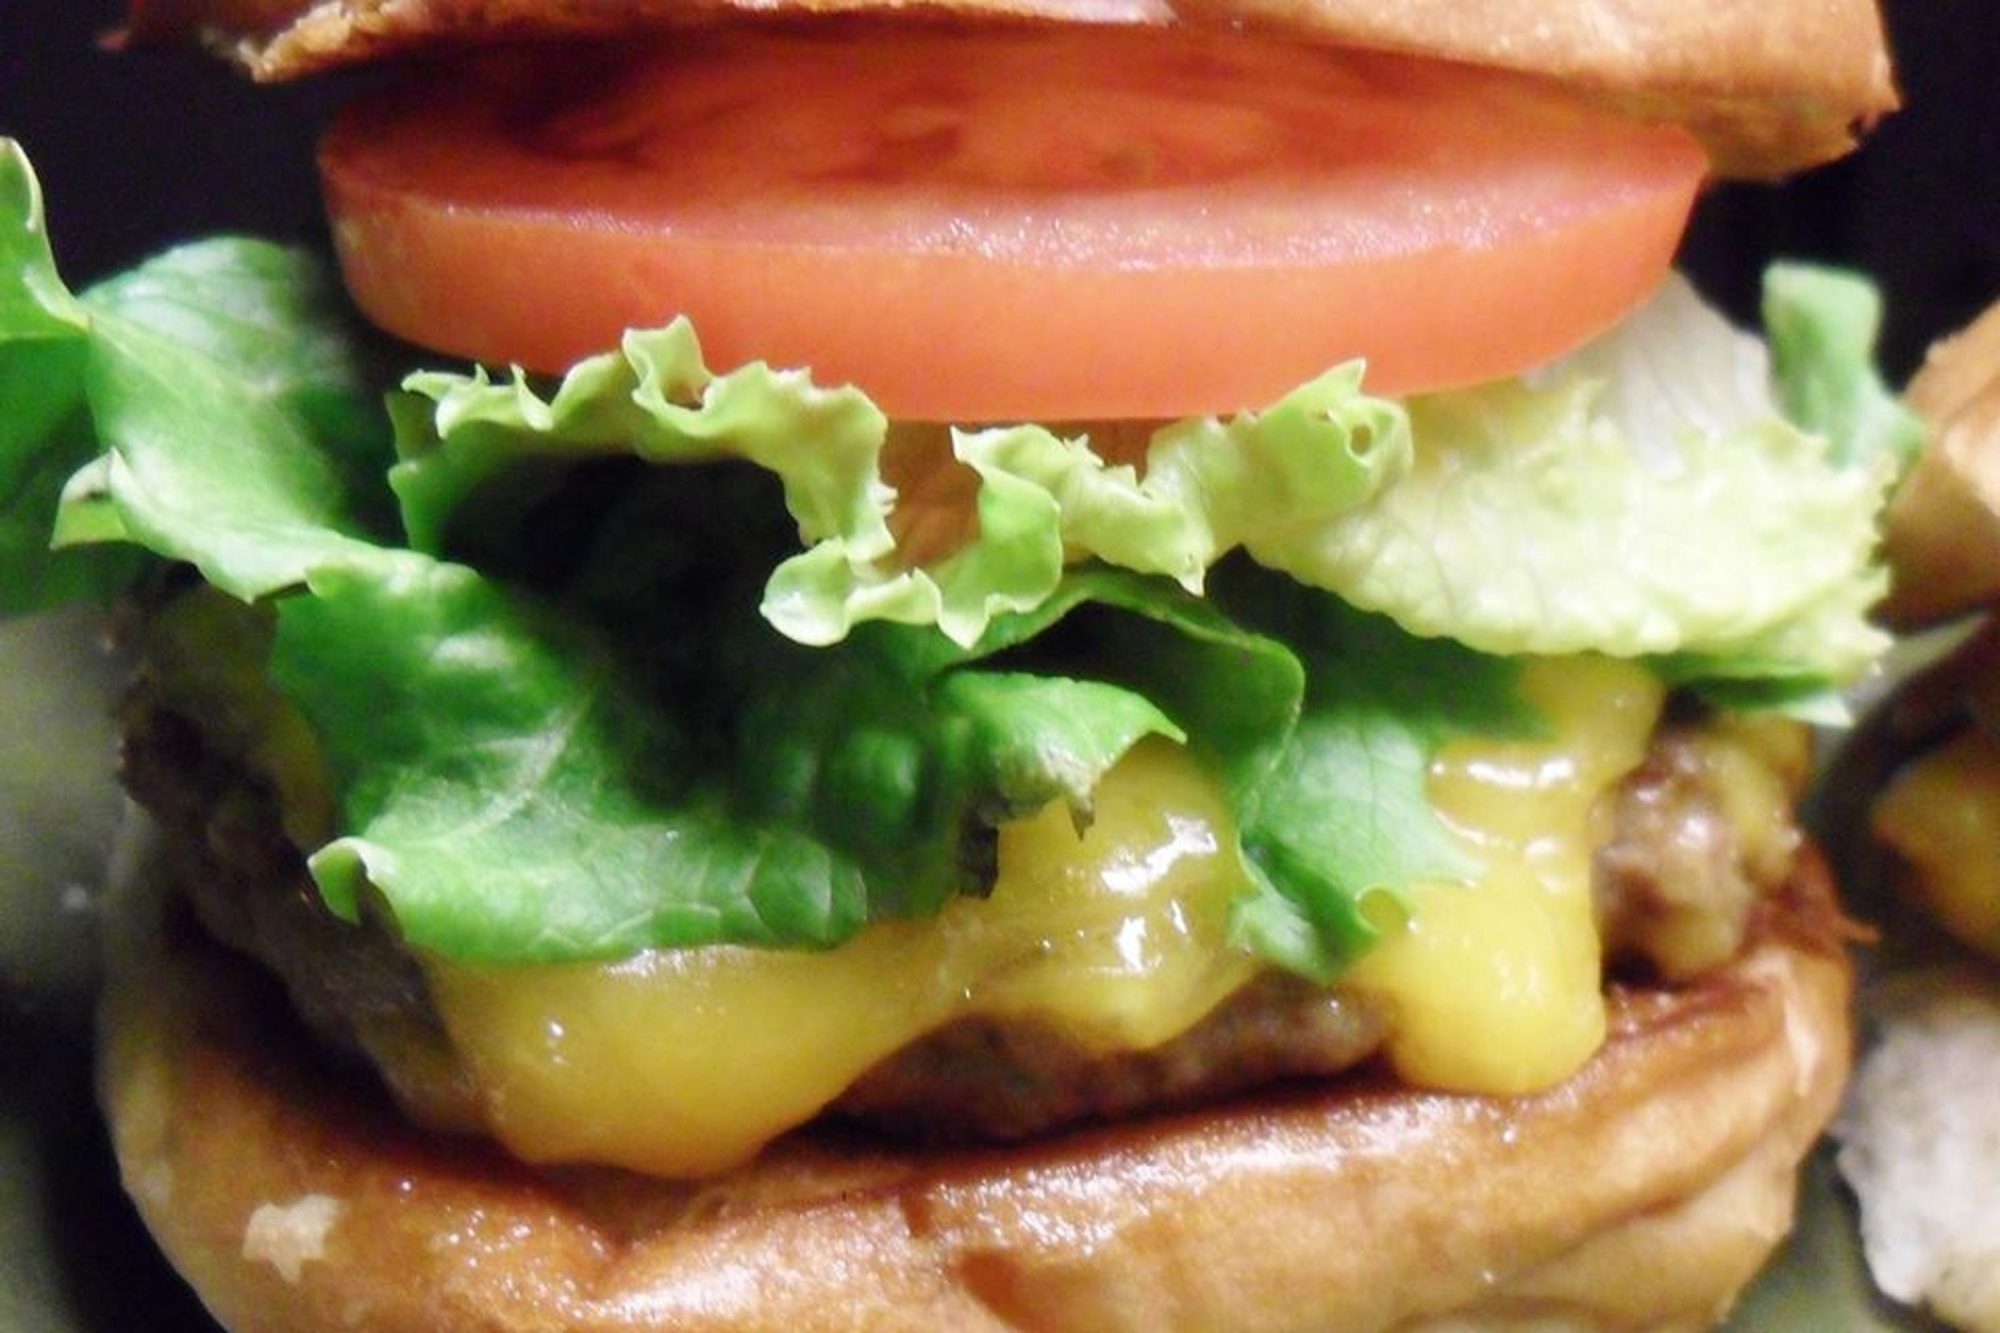 Close-up of hamburger with cheese, lettuce, and tomato